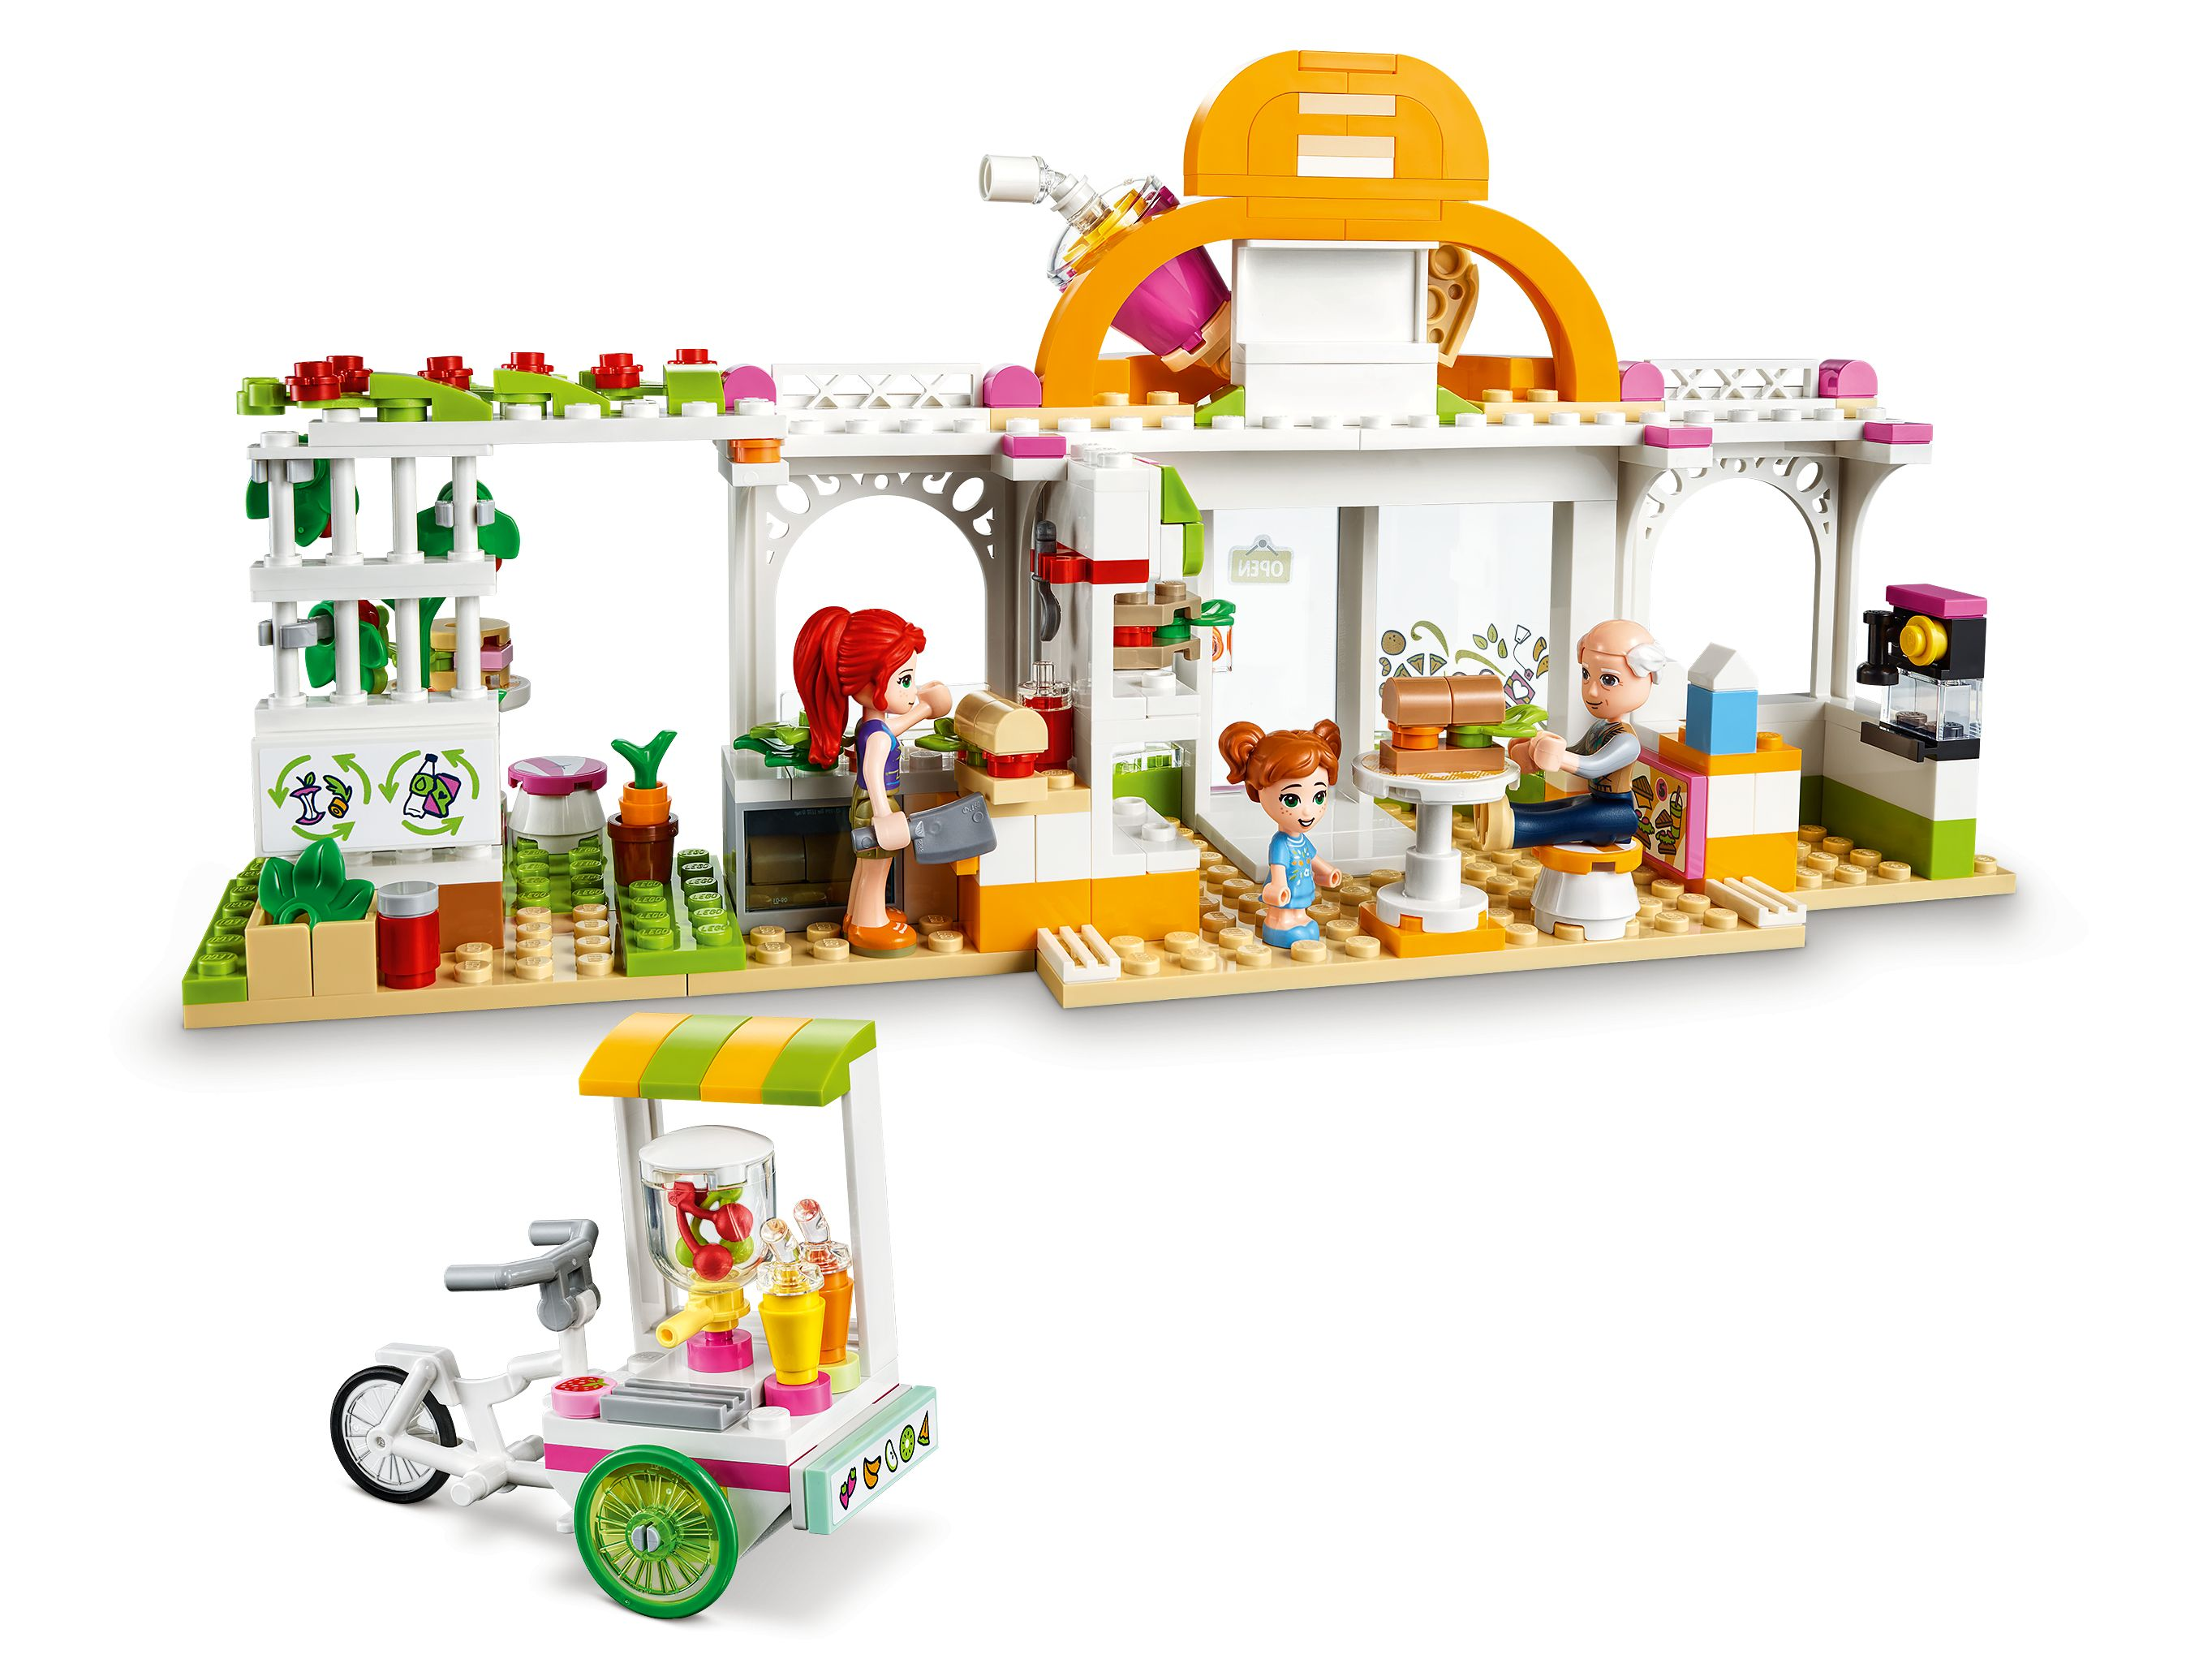 LEGO Friends 41444 Heartlake City Bio-Café LEGO_41444_alt5.jpg